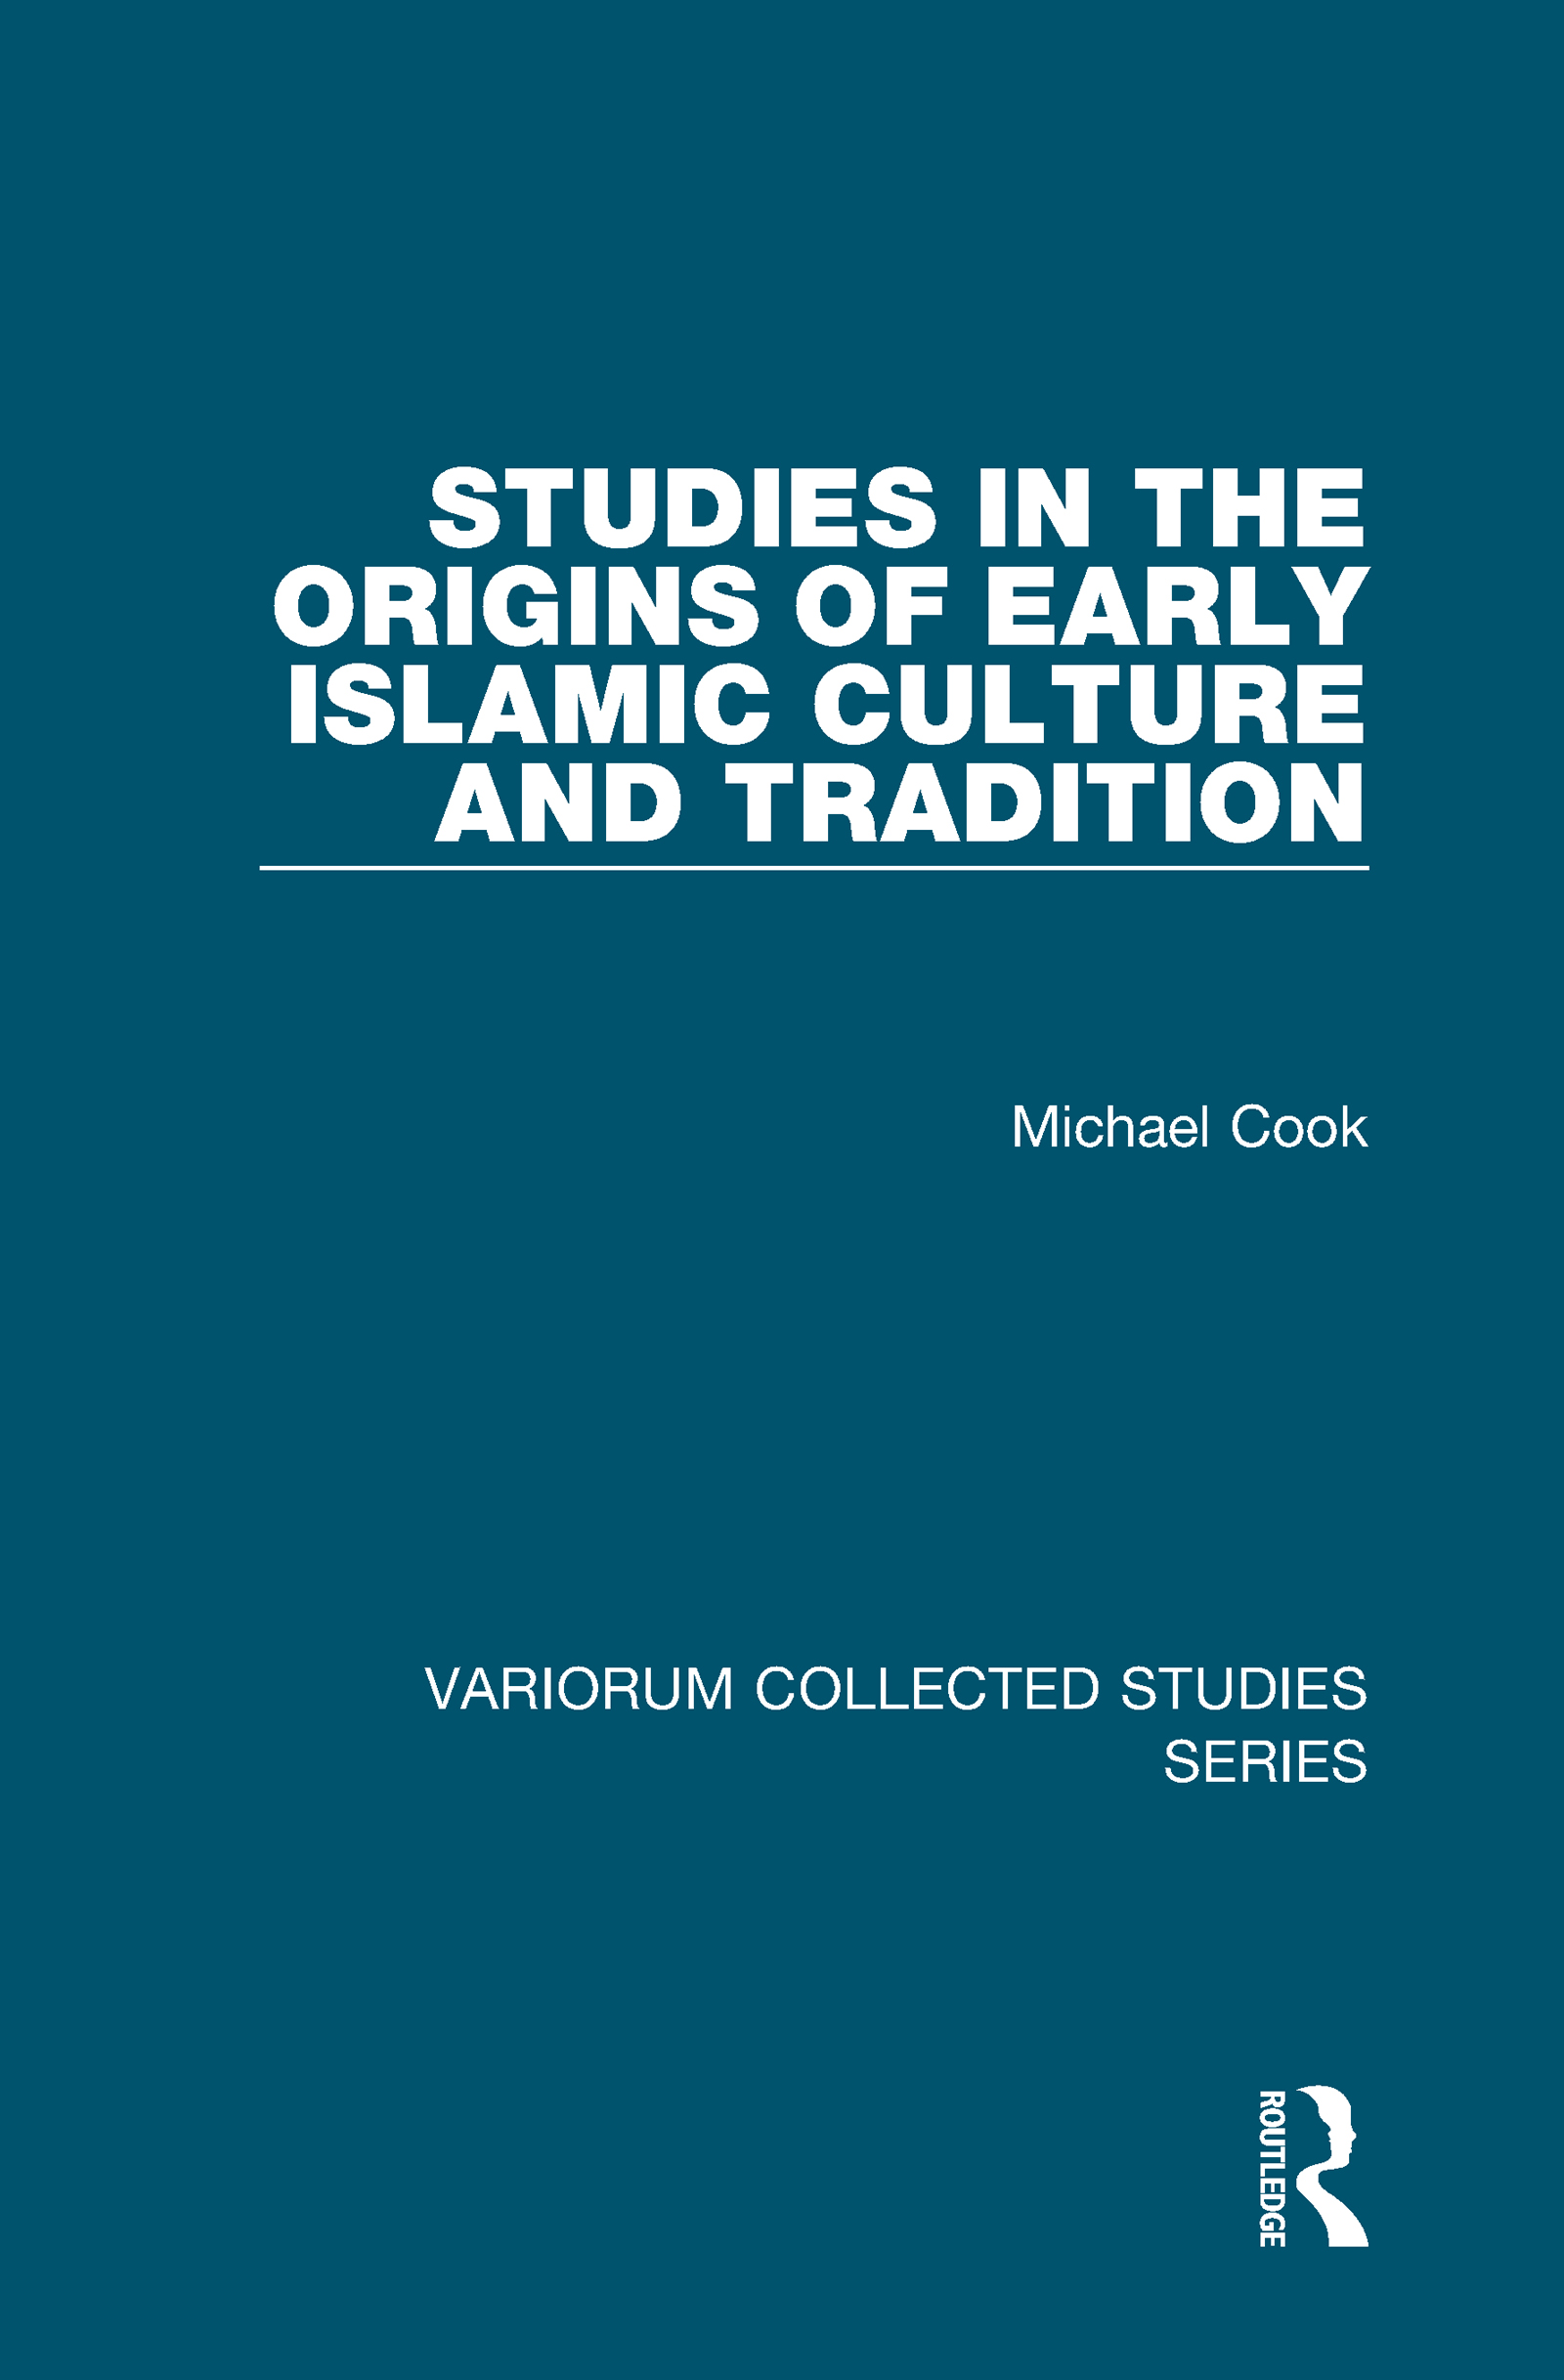 Studies in the Origins of Early Islamic Culture and Tradition